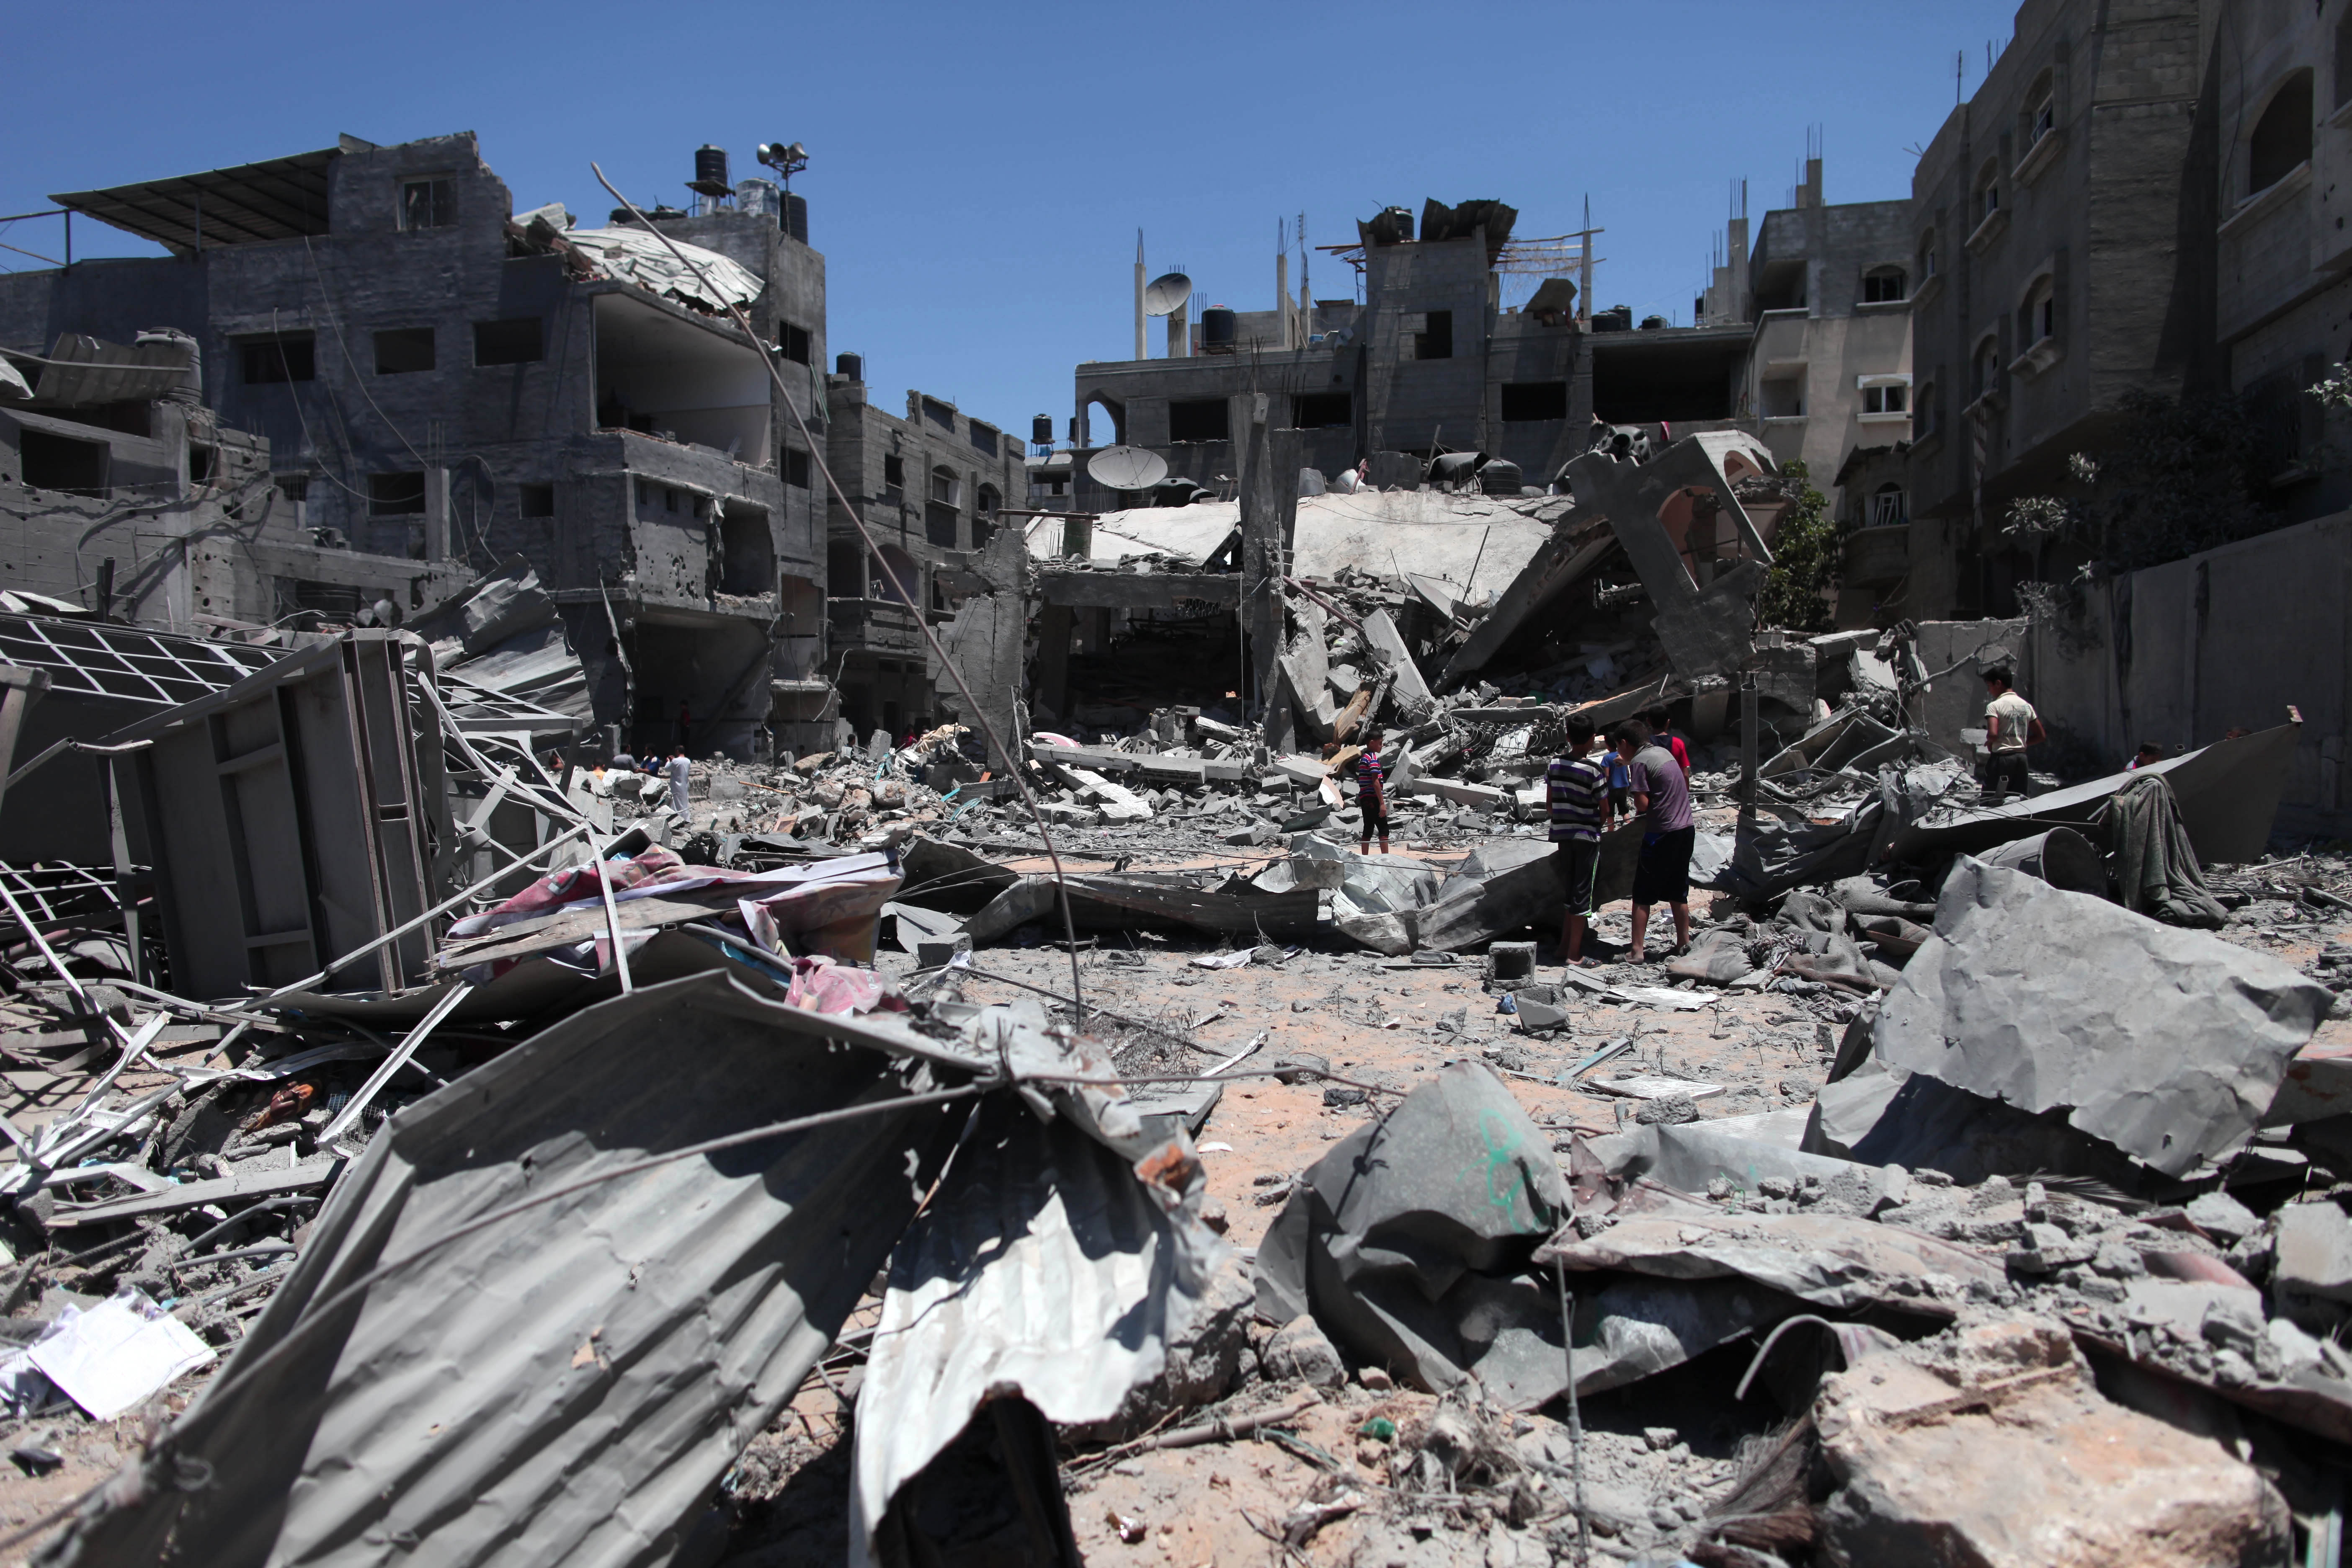 report gave gazans no way out in summer war a report by physicians for human rights said i policy did not allow sufficient